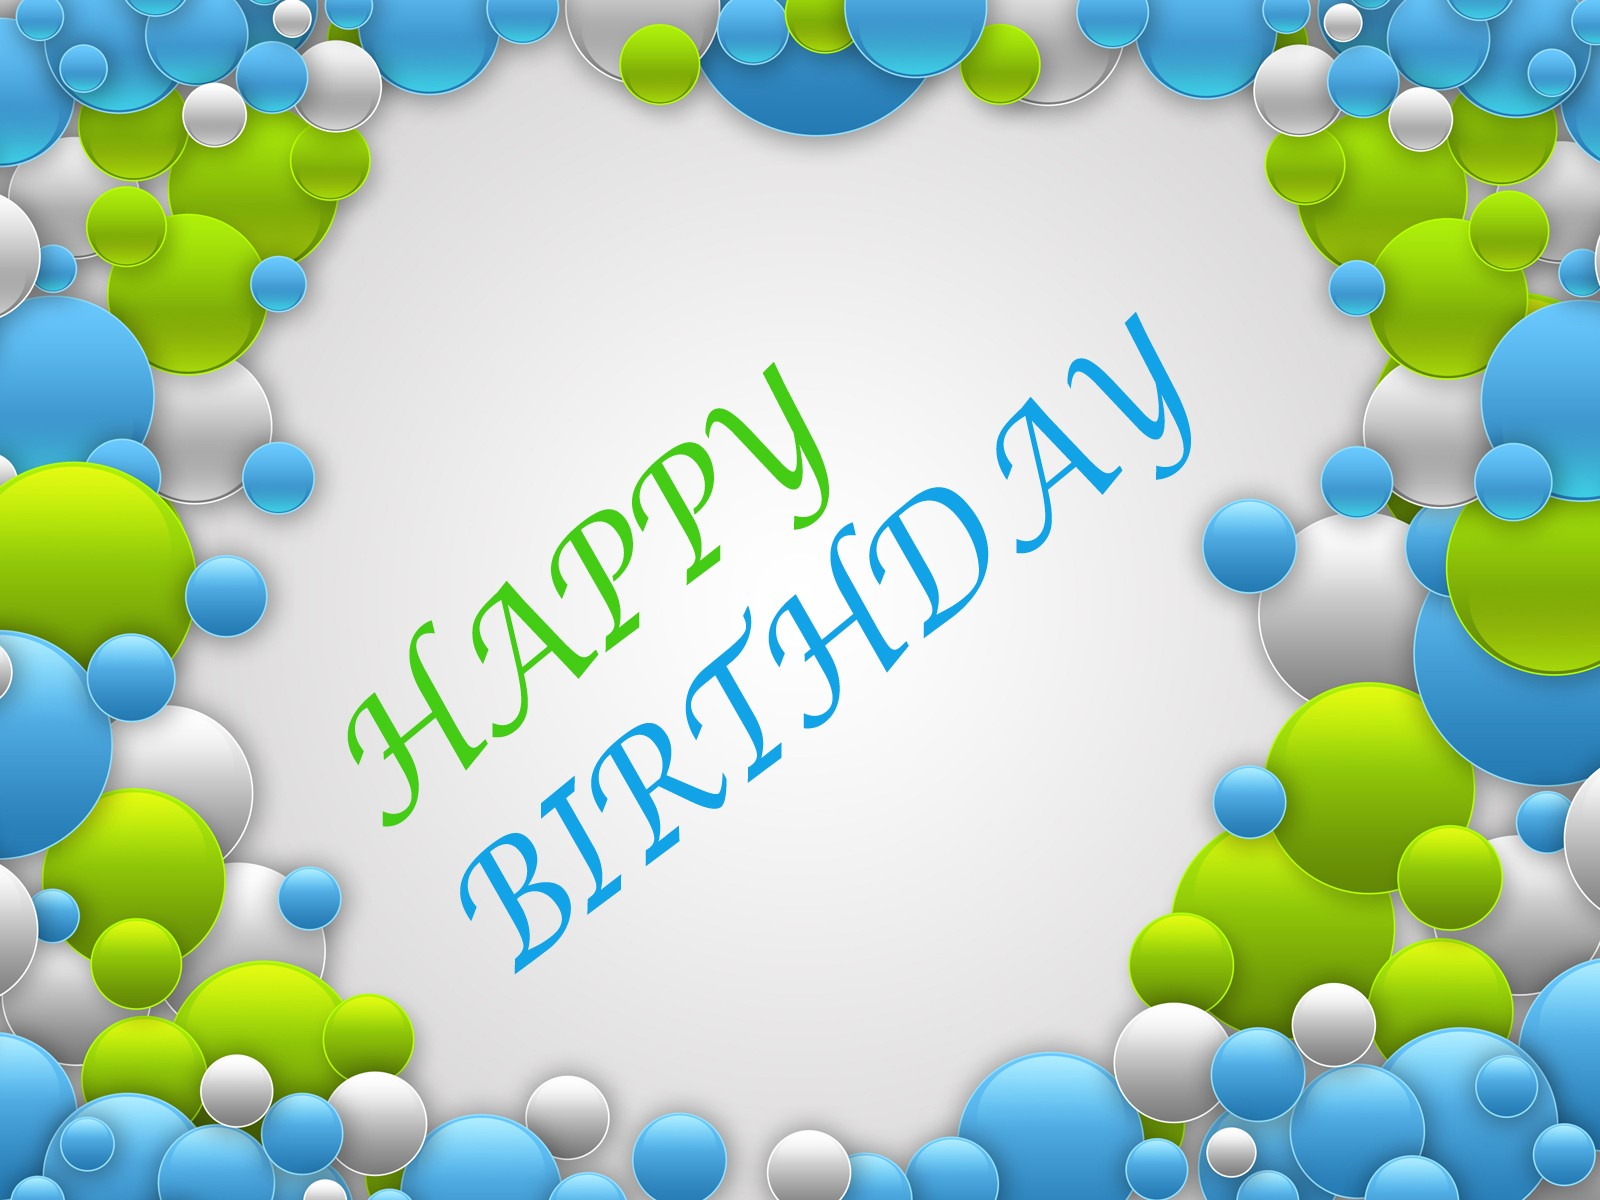 happy birthday hd wallpaper With Resolutions 16001200 Pixel 1600x1200